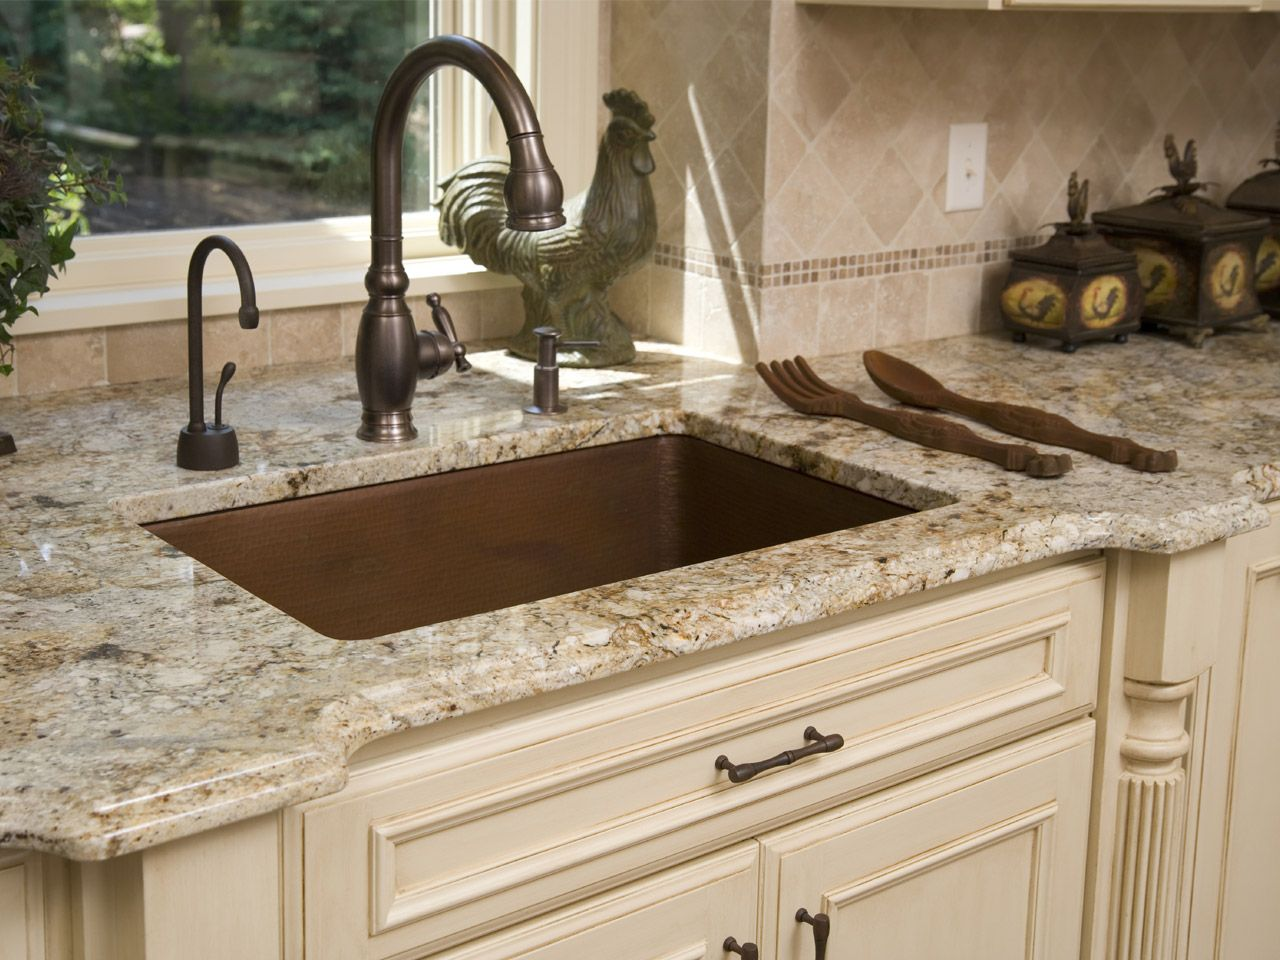 Best Granite For Cream Cabinets | Your Local Kitchen Cabinets Store U2013  Roanoke VA U0026 Beyond